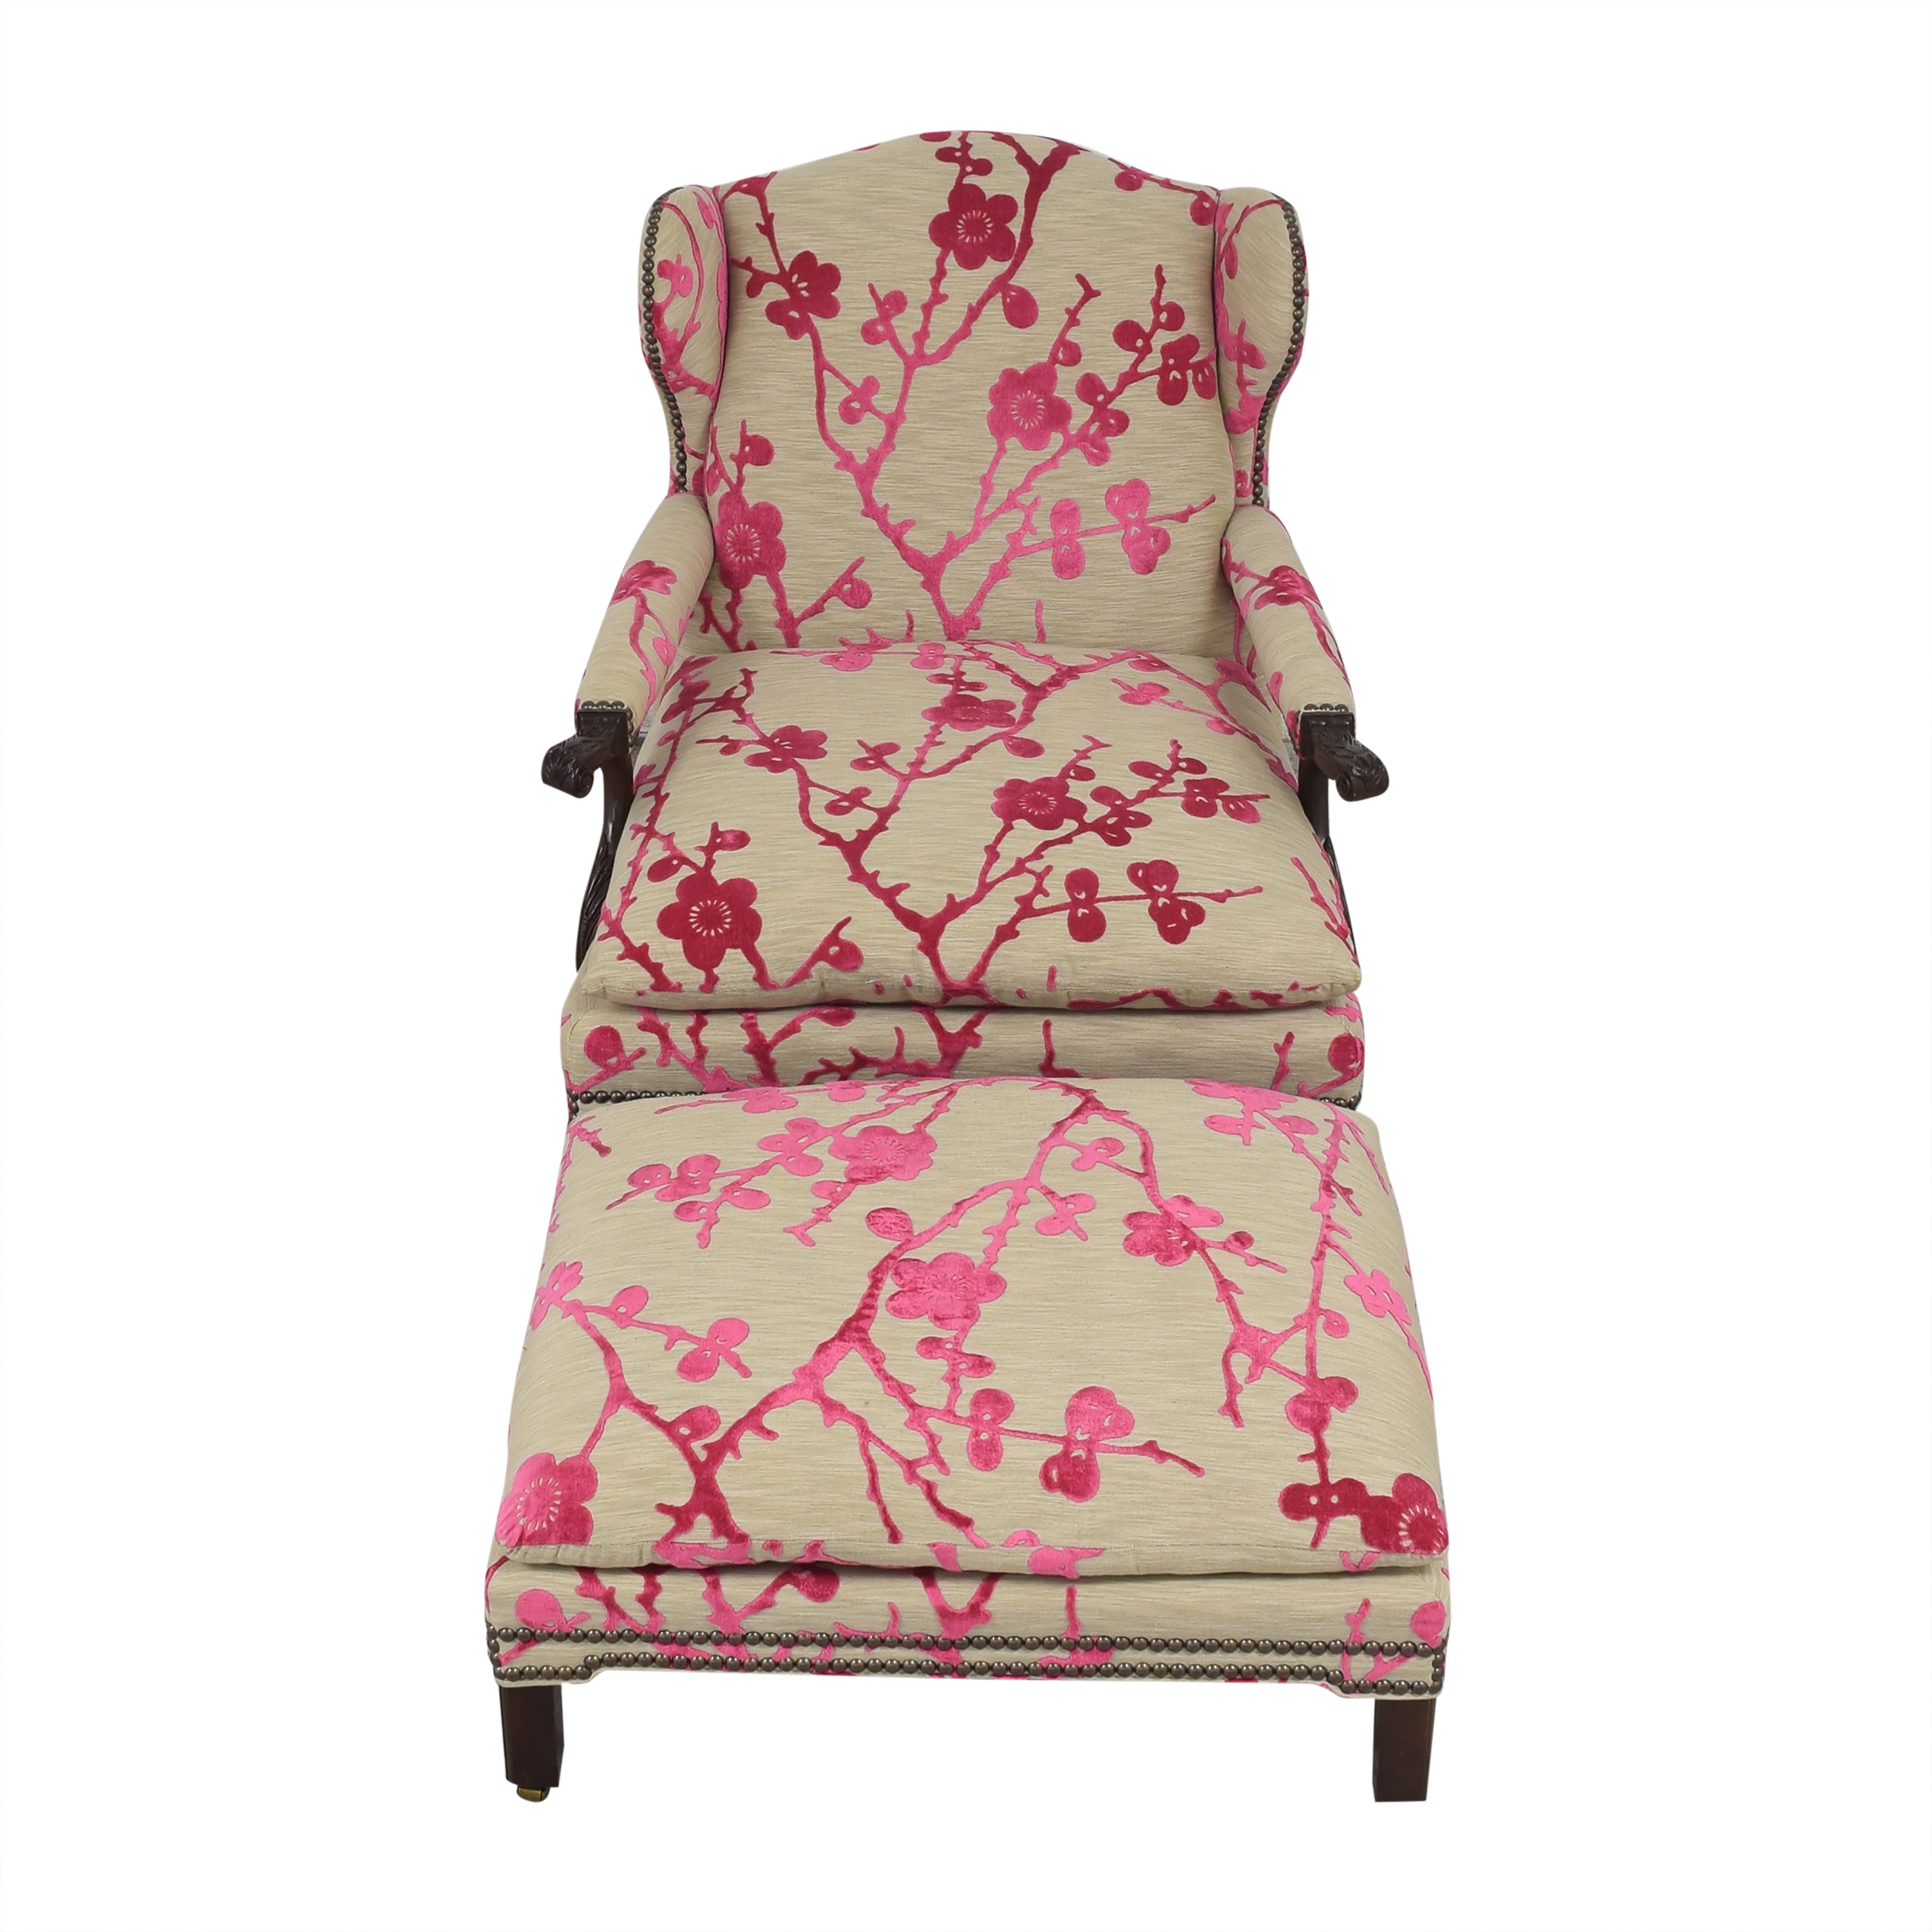 Hickory Chair Hickory Chair Custom Lounge Chair with Ottoman coupon